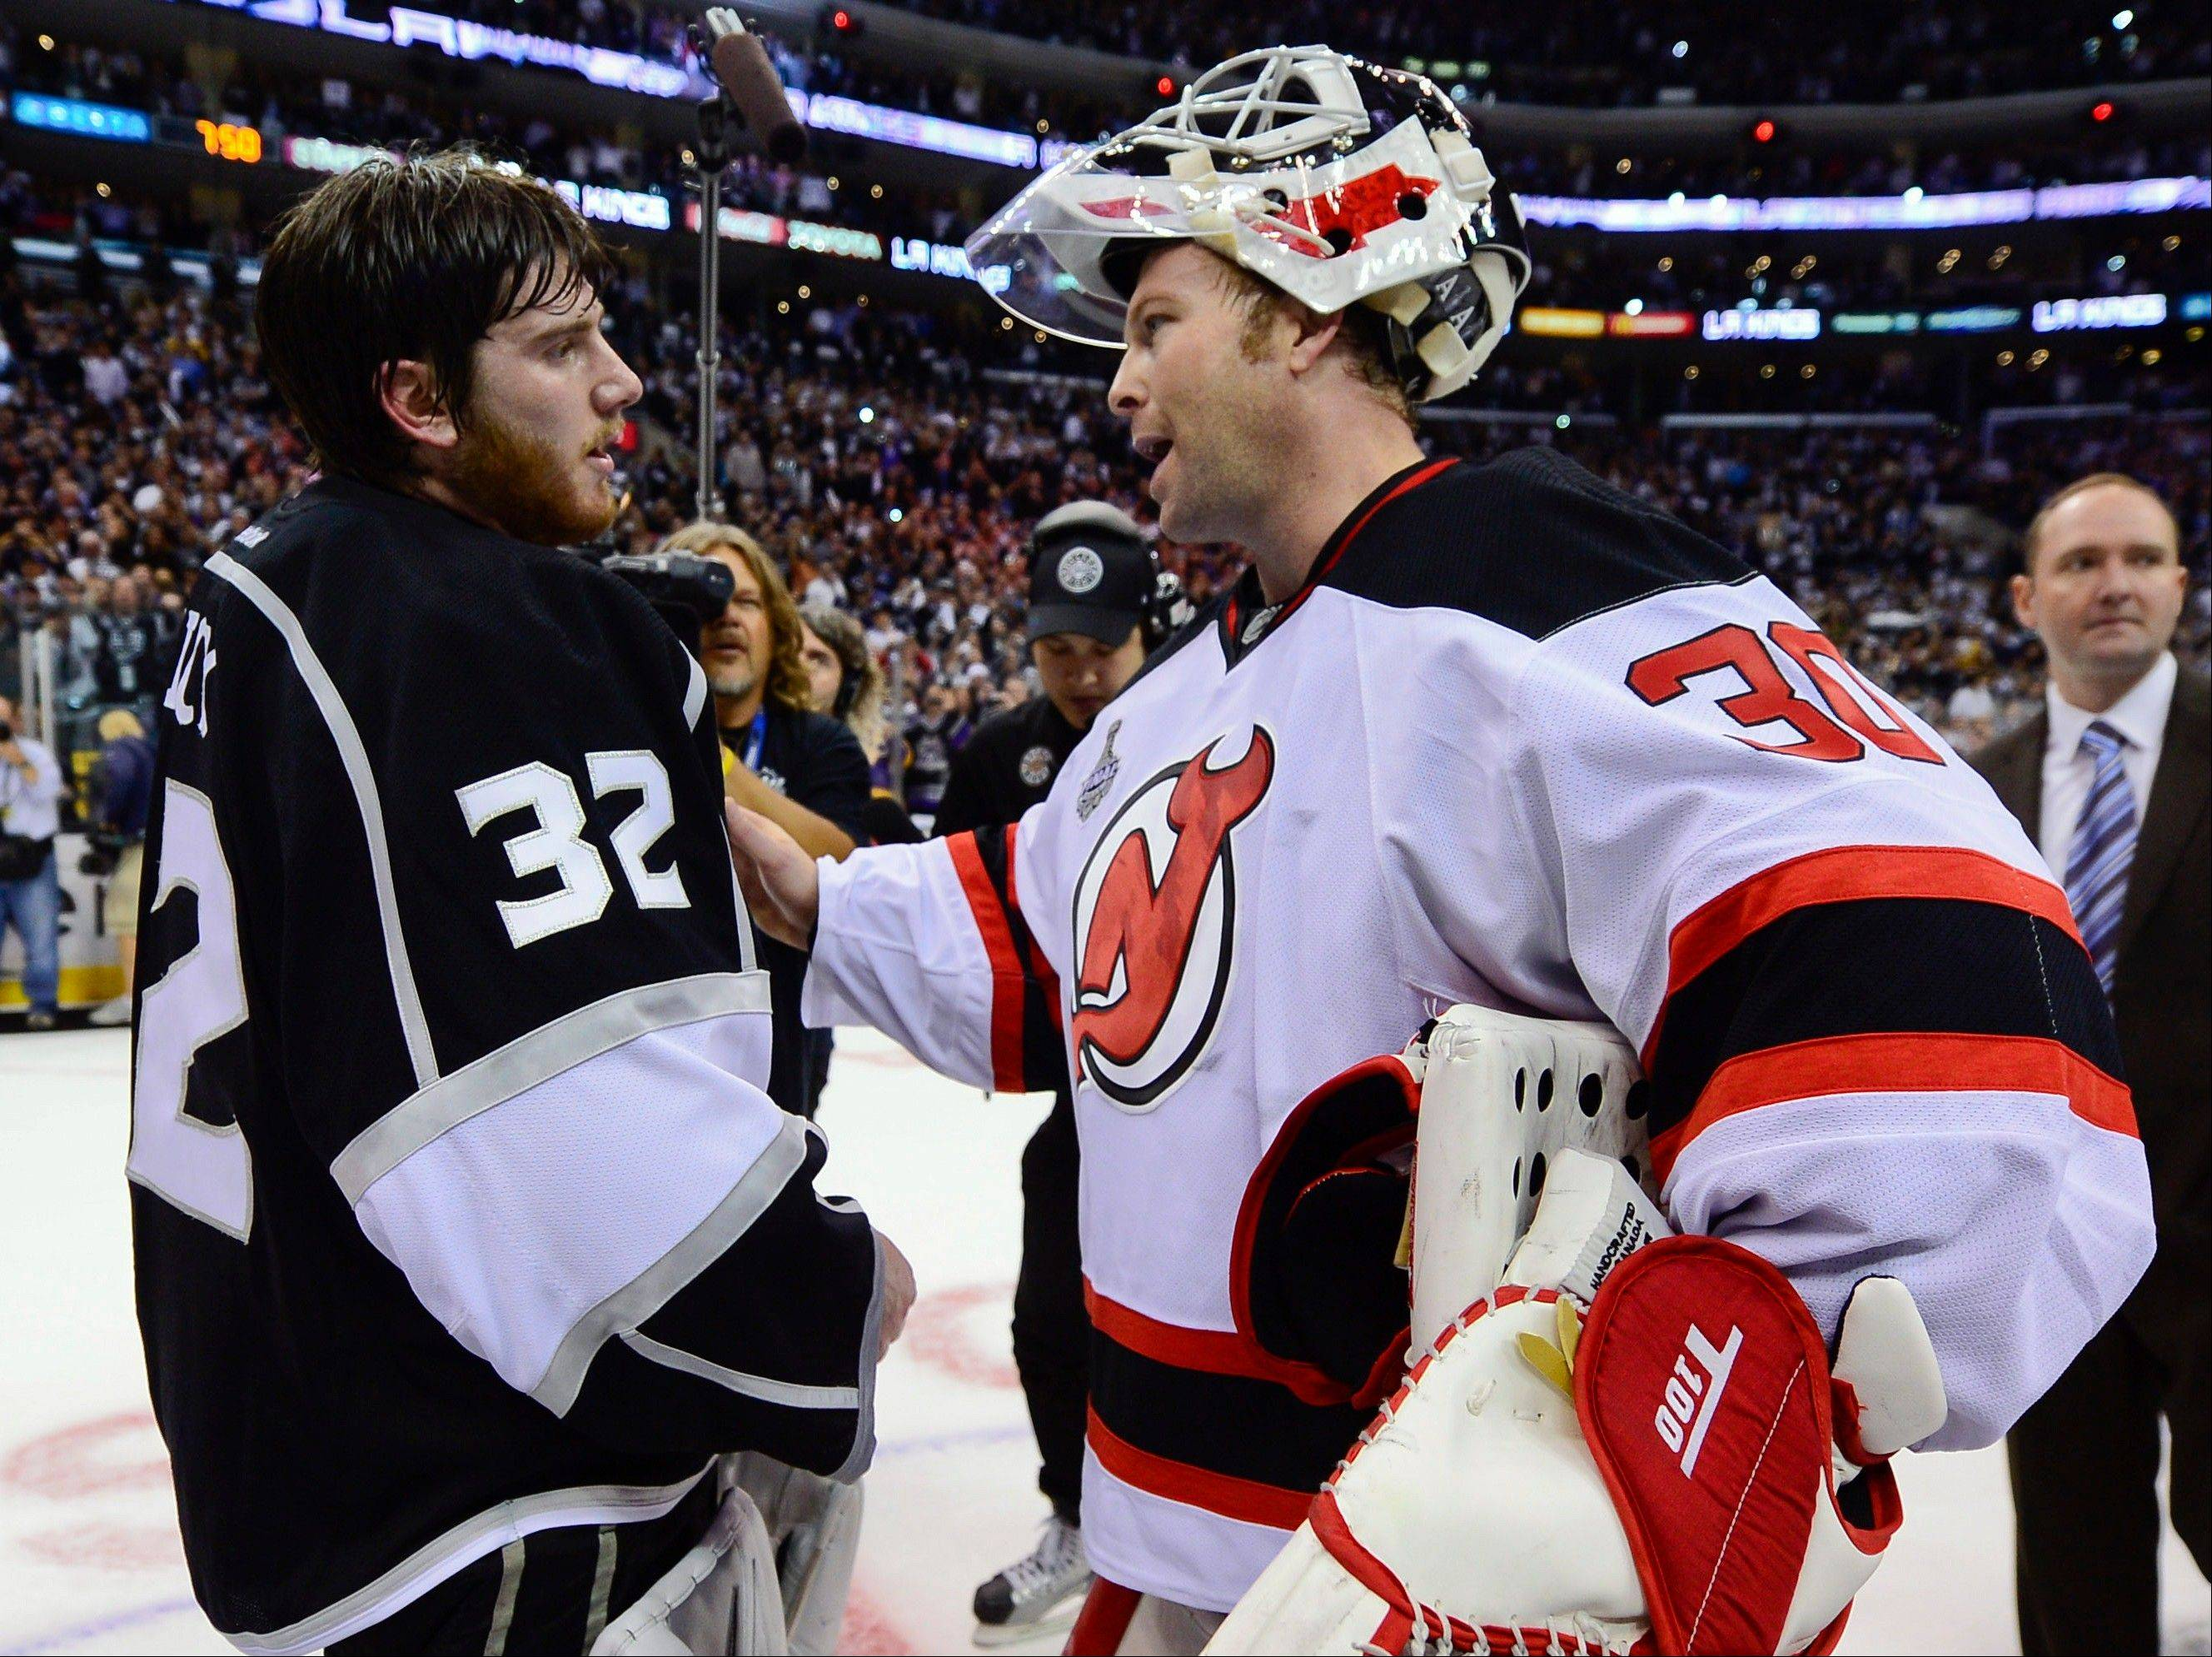 Los Angeles Kings goalie Jonathan Quick, left, is congratulated by New Jersey Devils goalie Martin Brodeur Monday after the Kings defeated the Devils 6-1 to win the Stanley Cup.